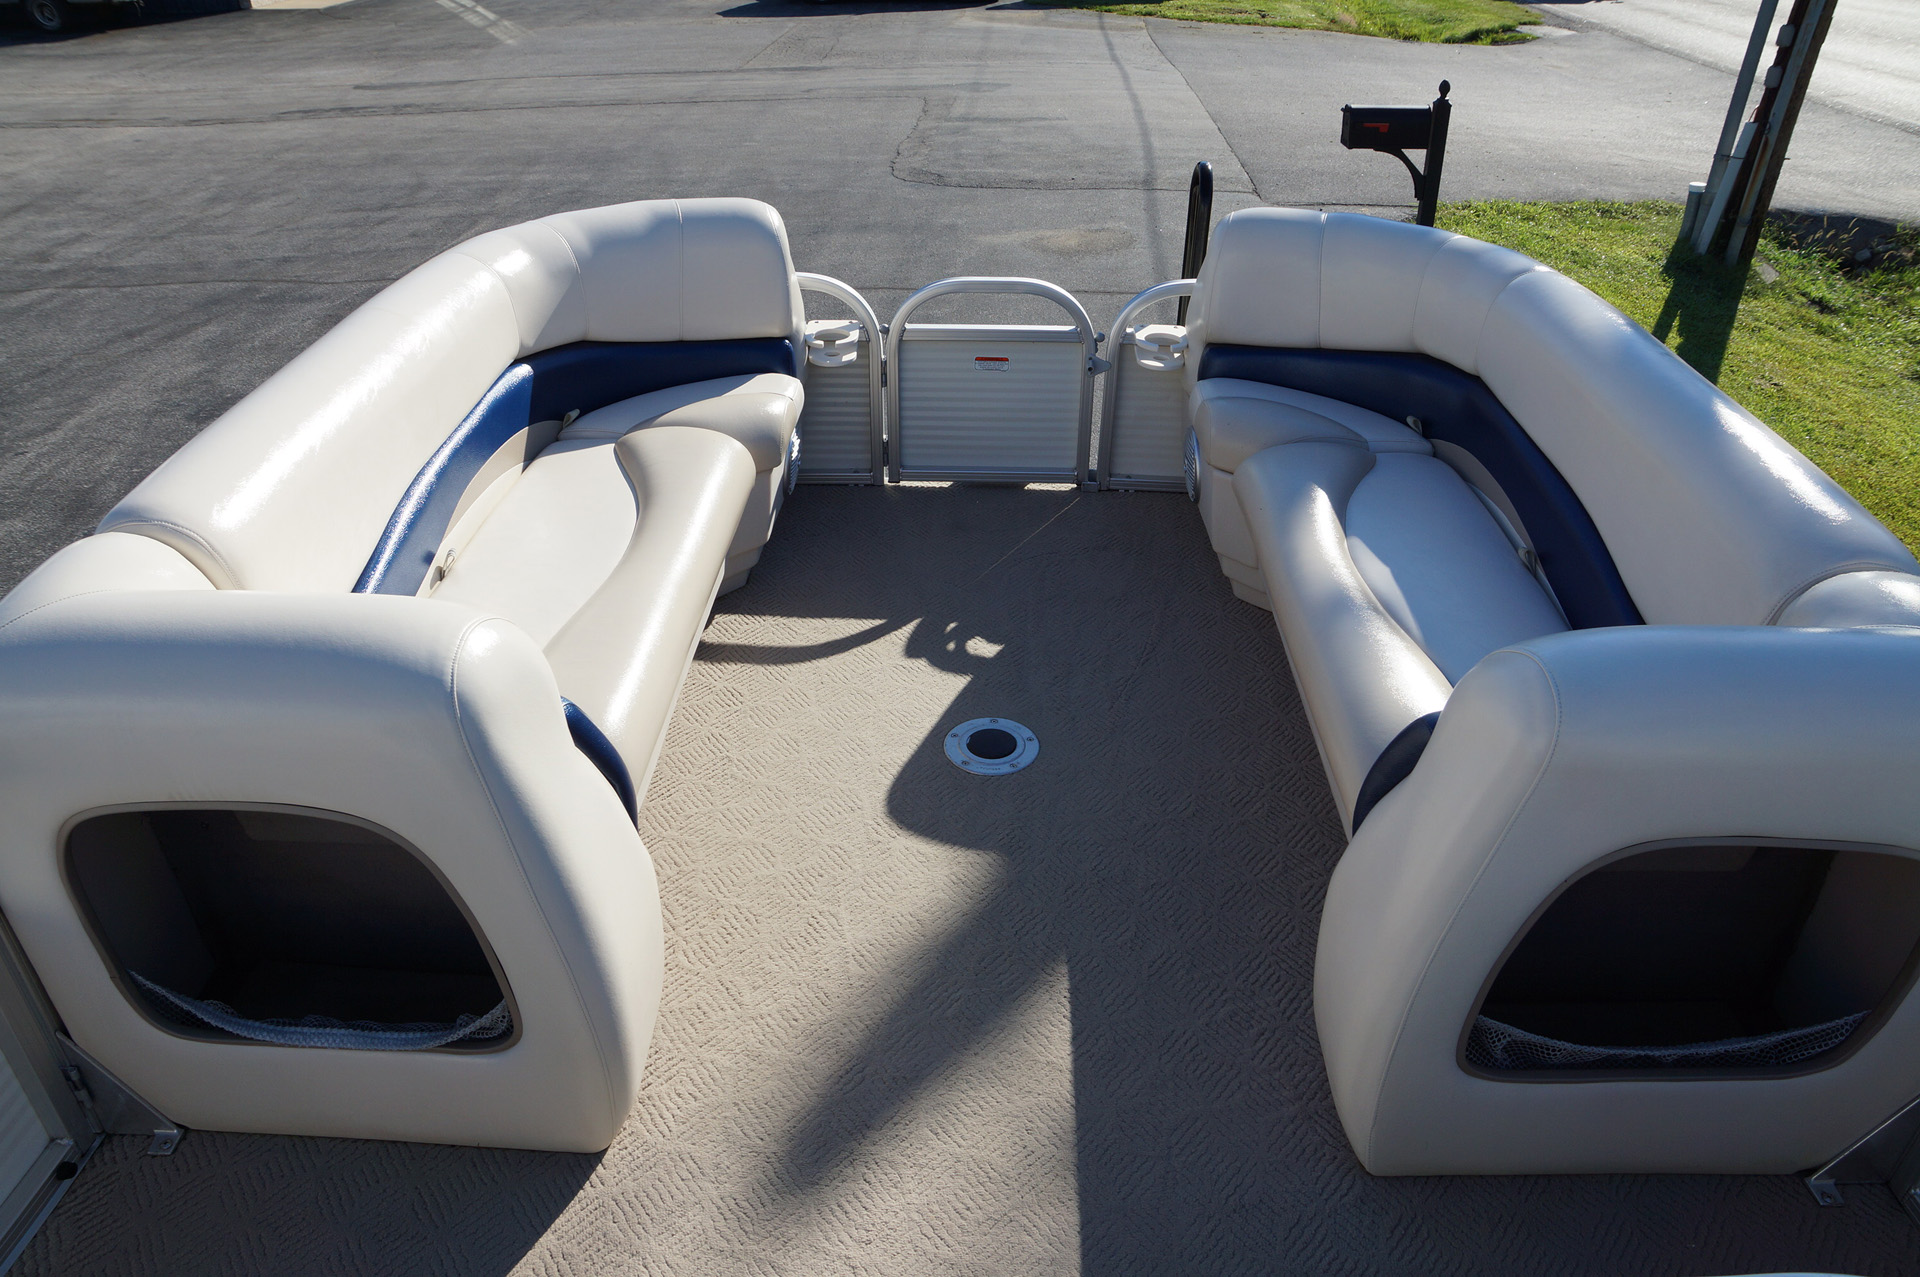 2010-tracker-party-barge-21-16